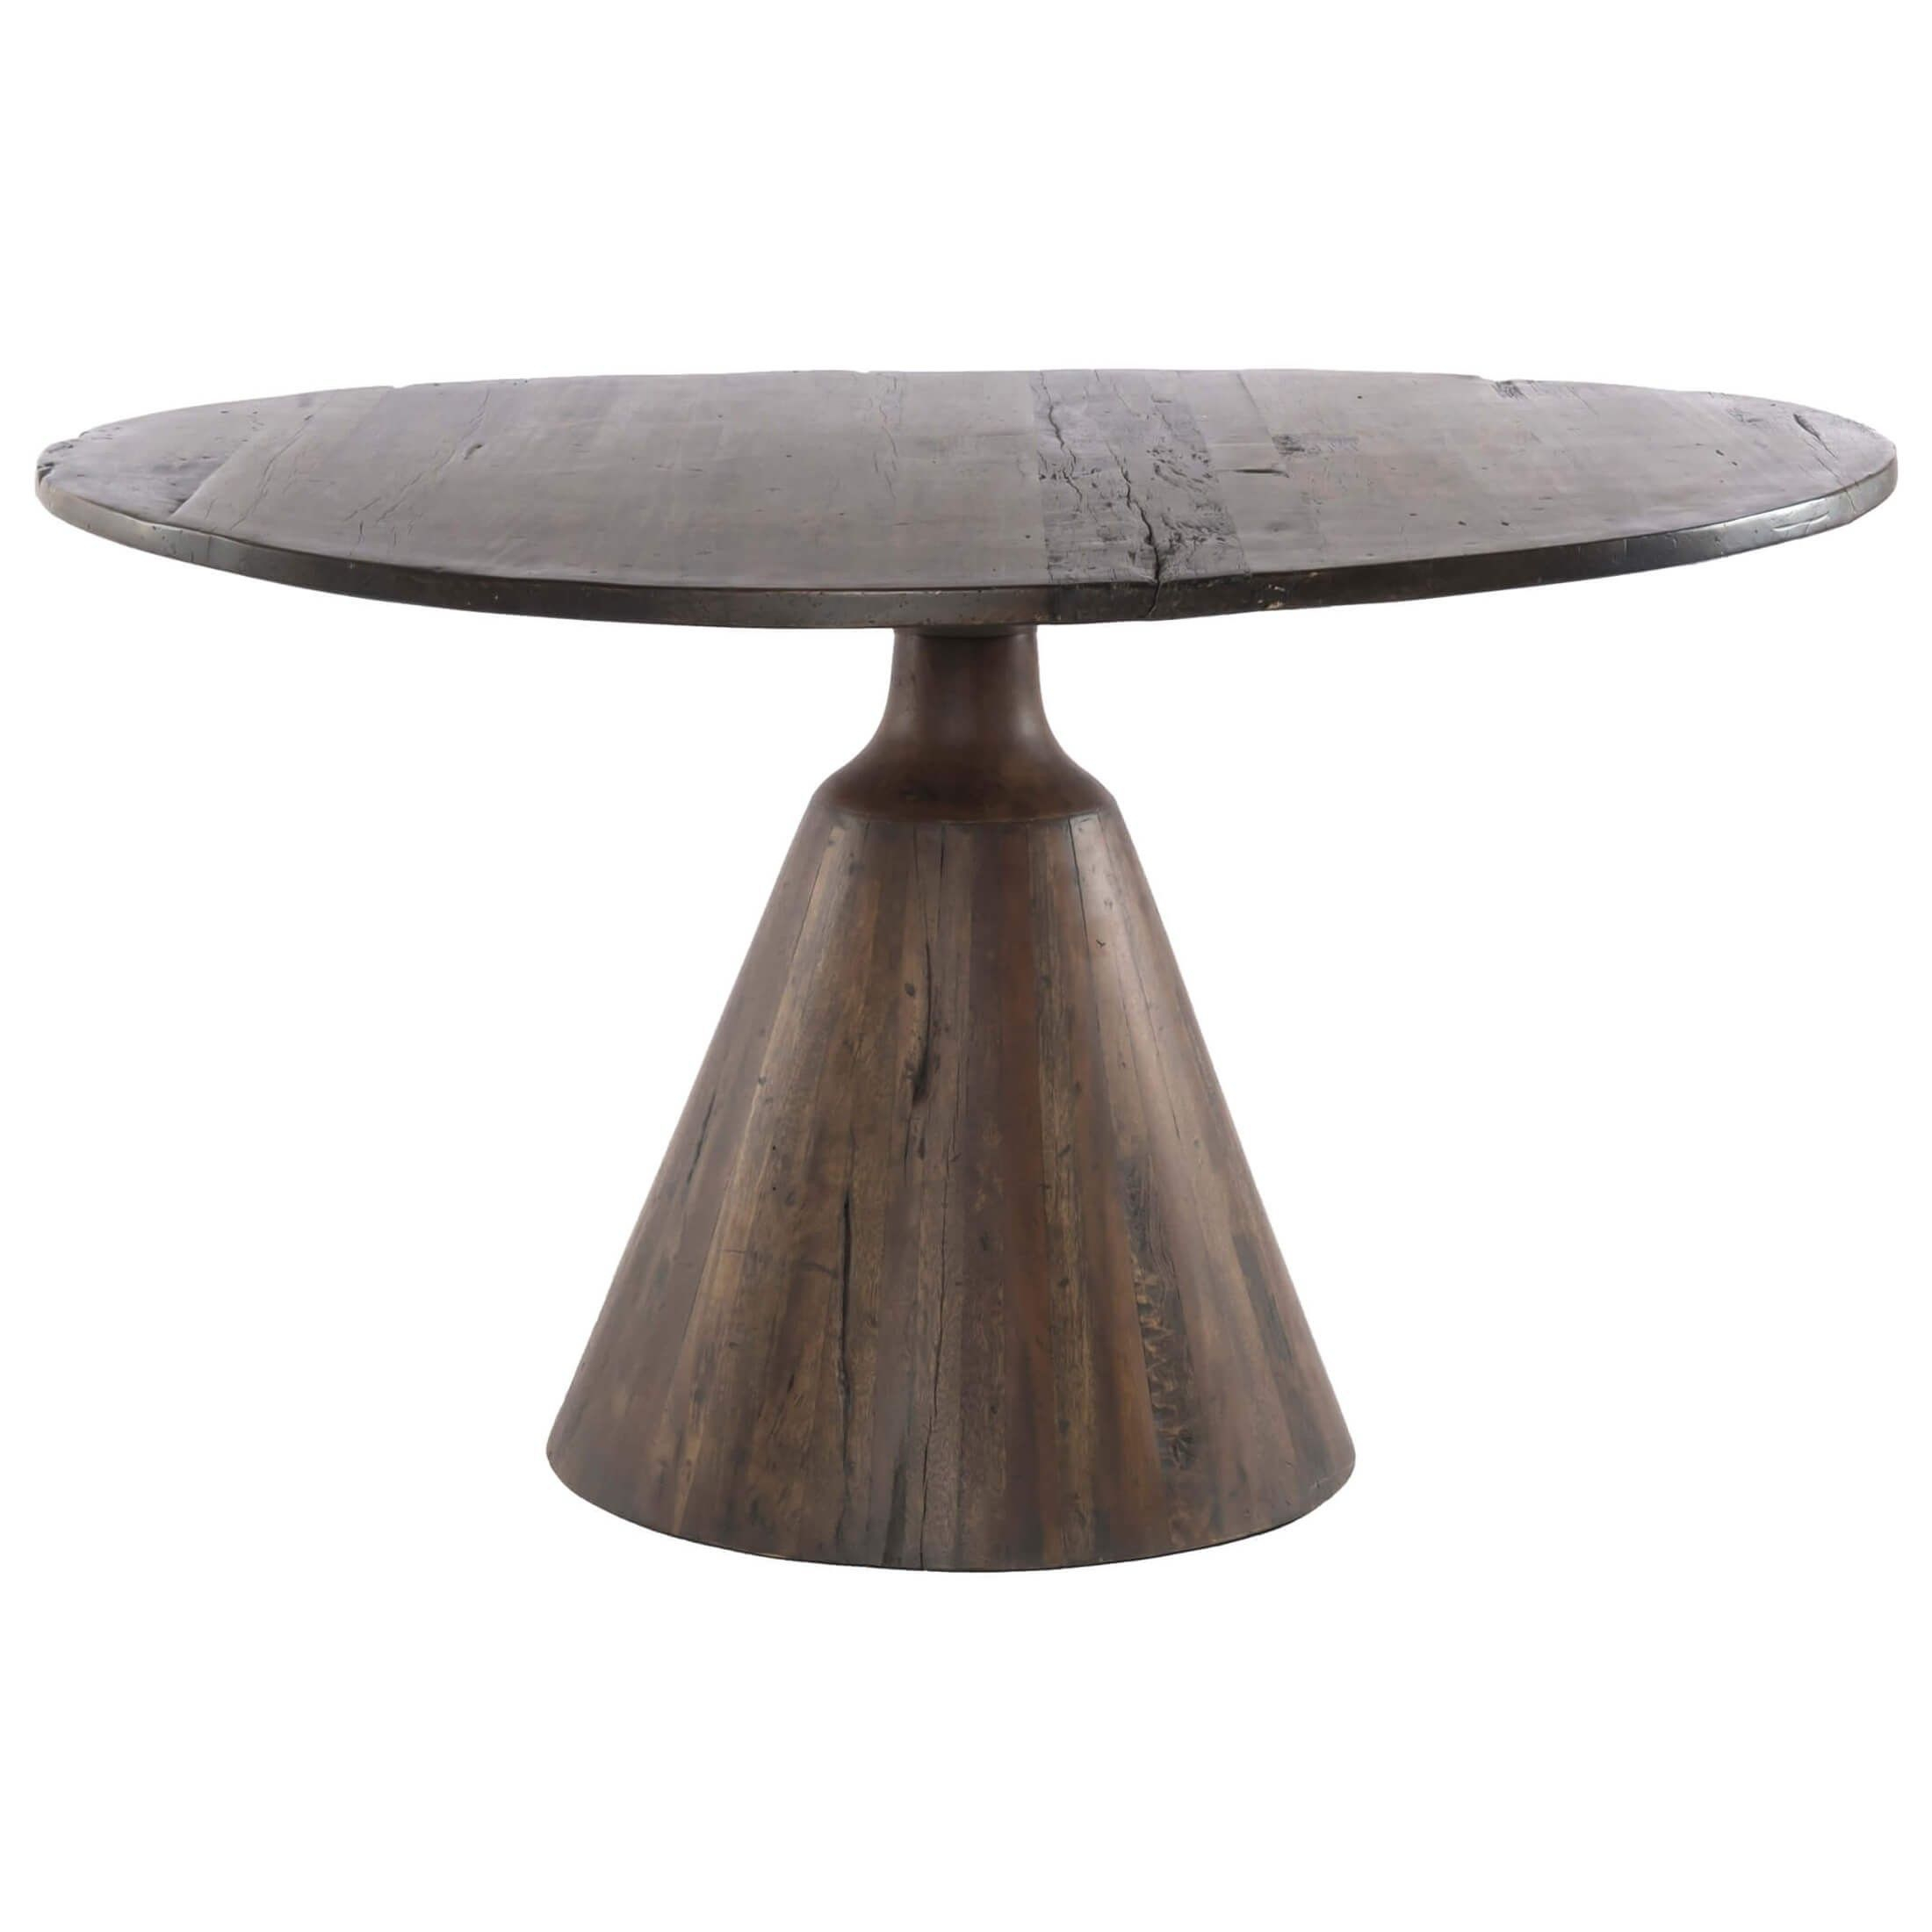 Bronx Bistro Table | Lincoln | Round Pedestal Dining Table With Regard To Best And Newest Warner Round Pedestal Dining Tables (View 3 of 25)